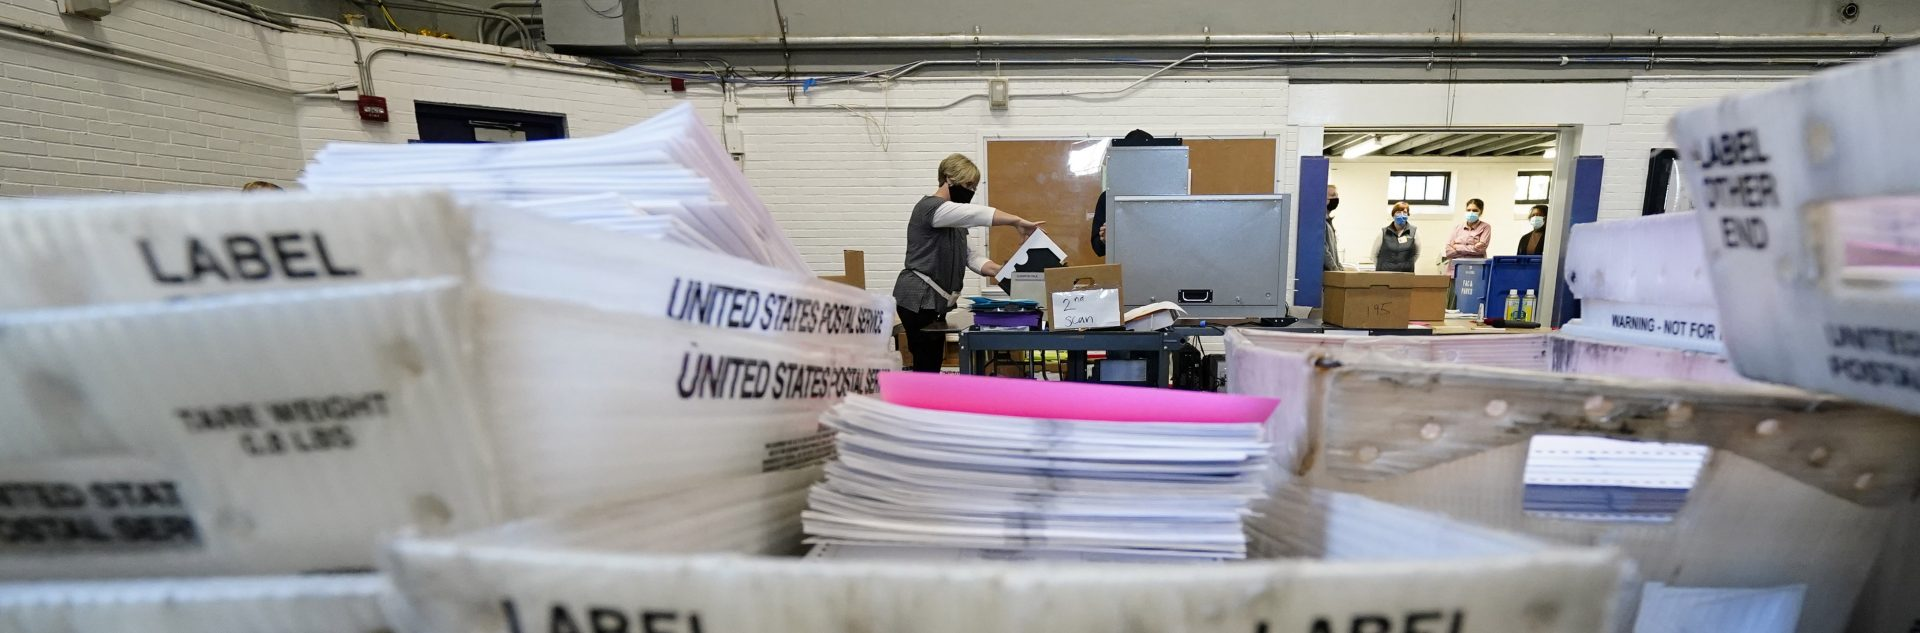 Chester County election workers scan mail-in and absentee ballots for the 2020 general election in the United States at West Chester University, Wednesday, Nov. 4, 2020, in West Chester.